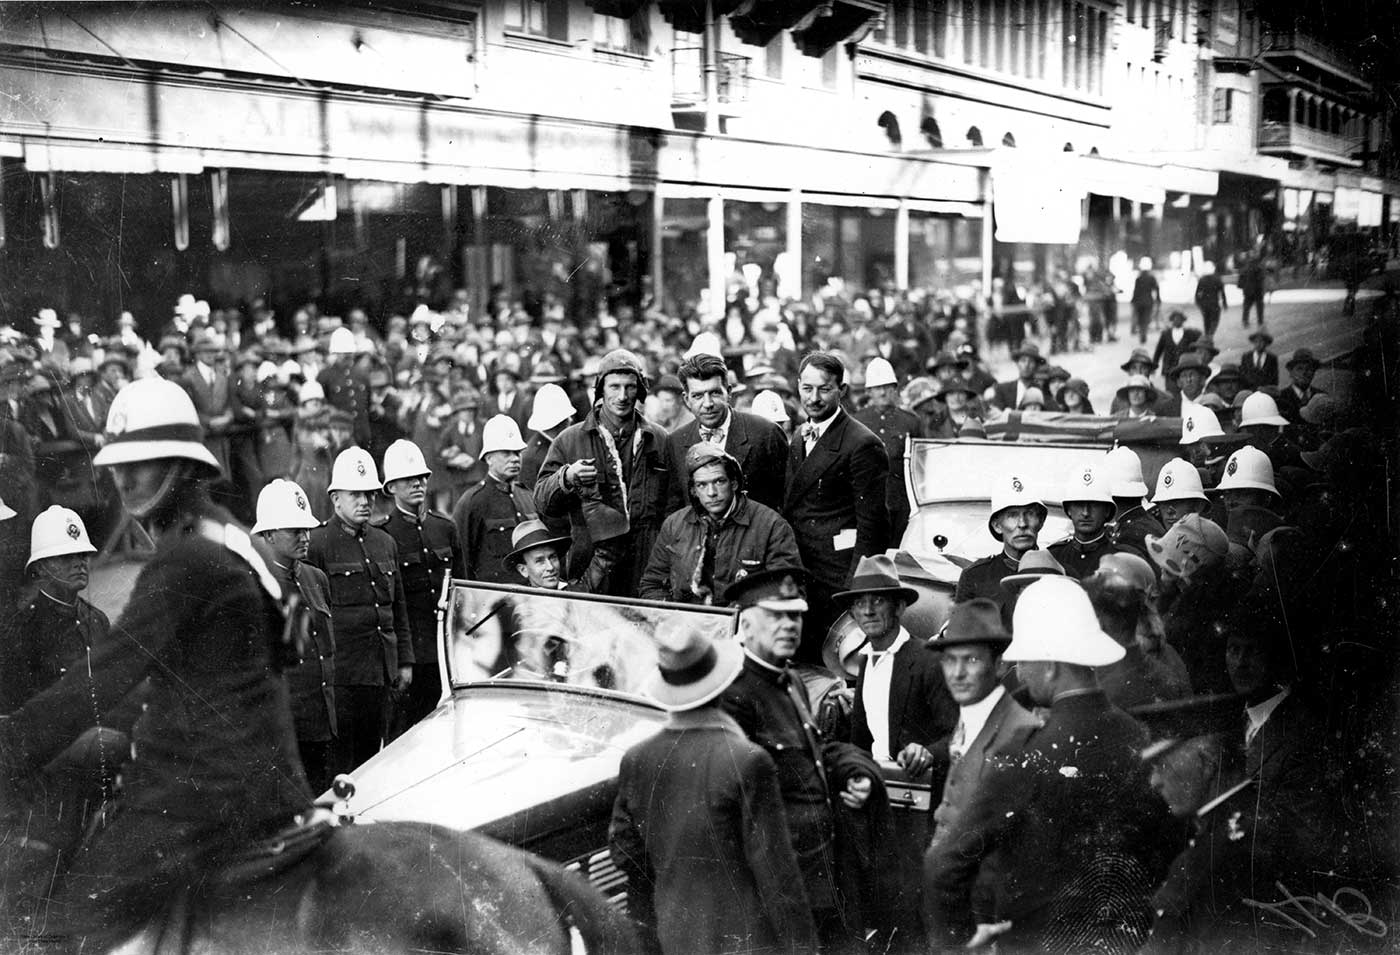 The crew of the Southern Cross in a car surrounded by people and policemen